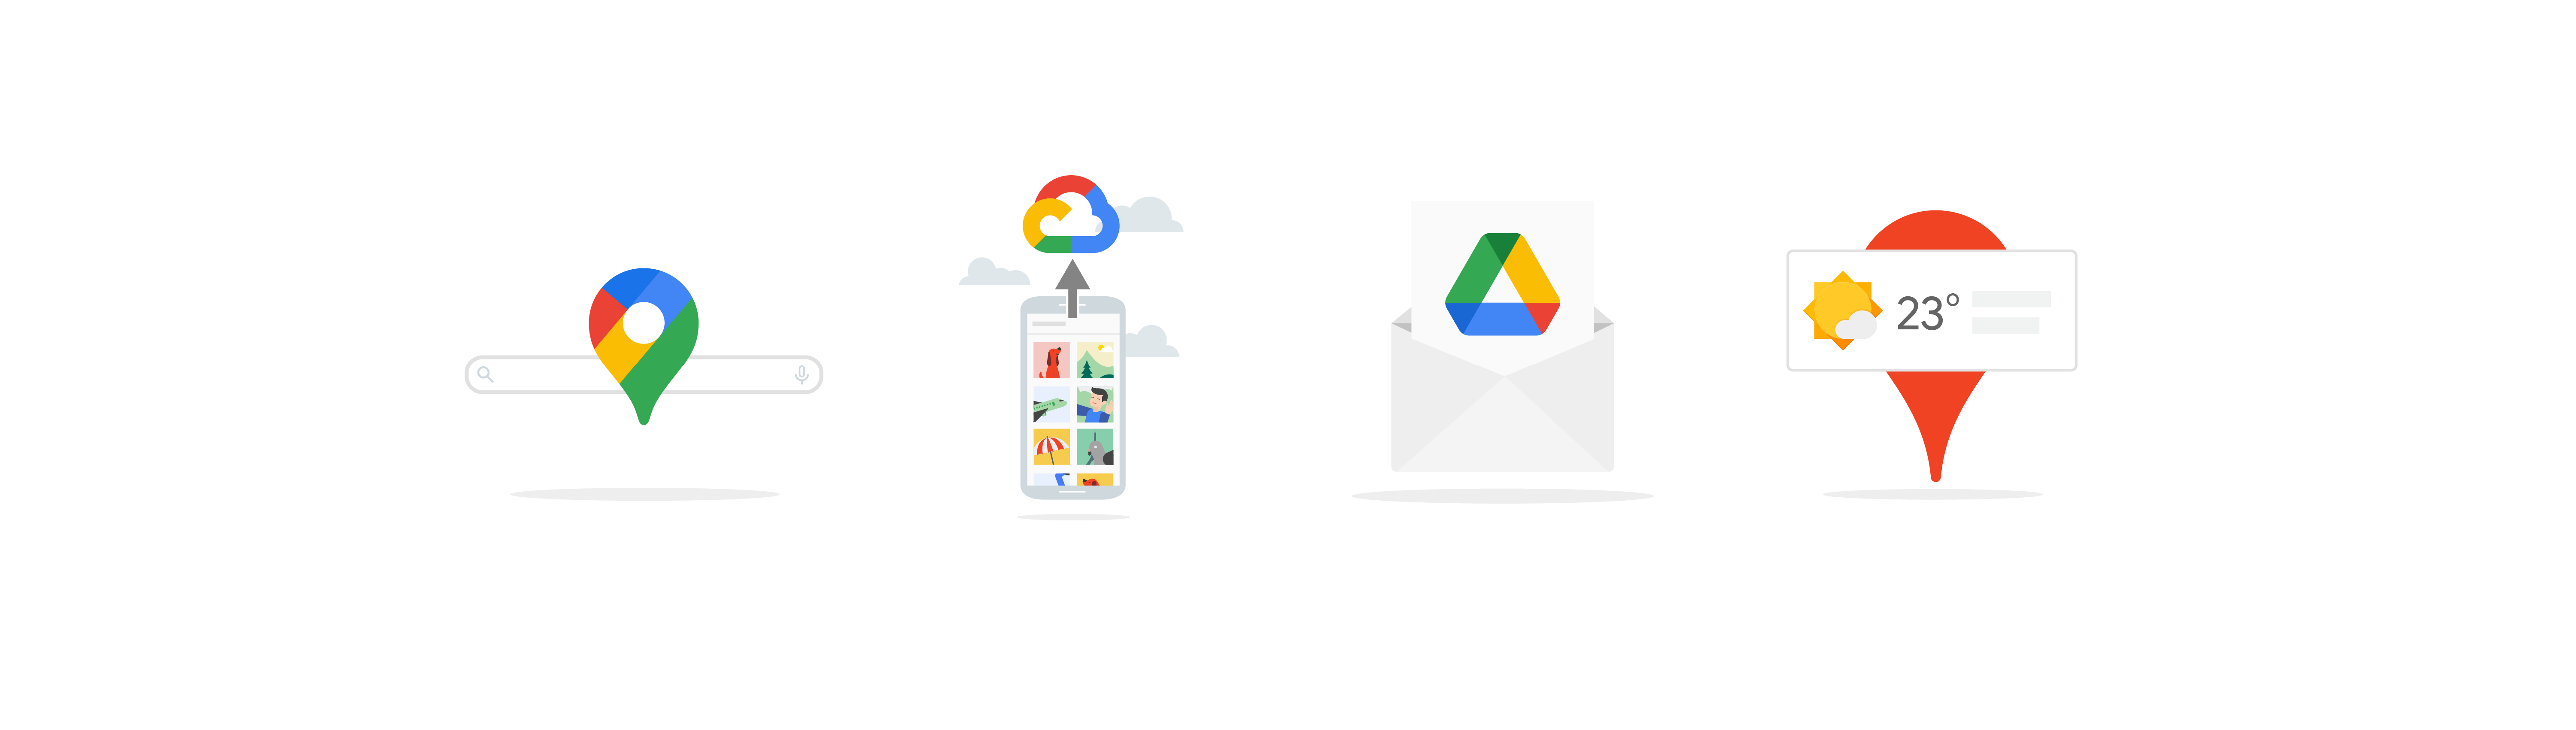 Four illustrations showing: the Google Maps logo on a search box, a mobile phone displaying photos and a Google Cloud icon (representing uploading to the cloud), an envelope open to show a piece of paper with the Google Drive icon, and a location pin with